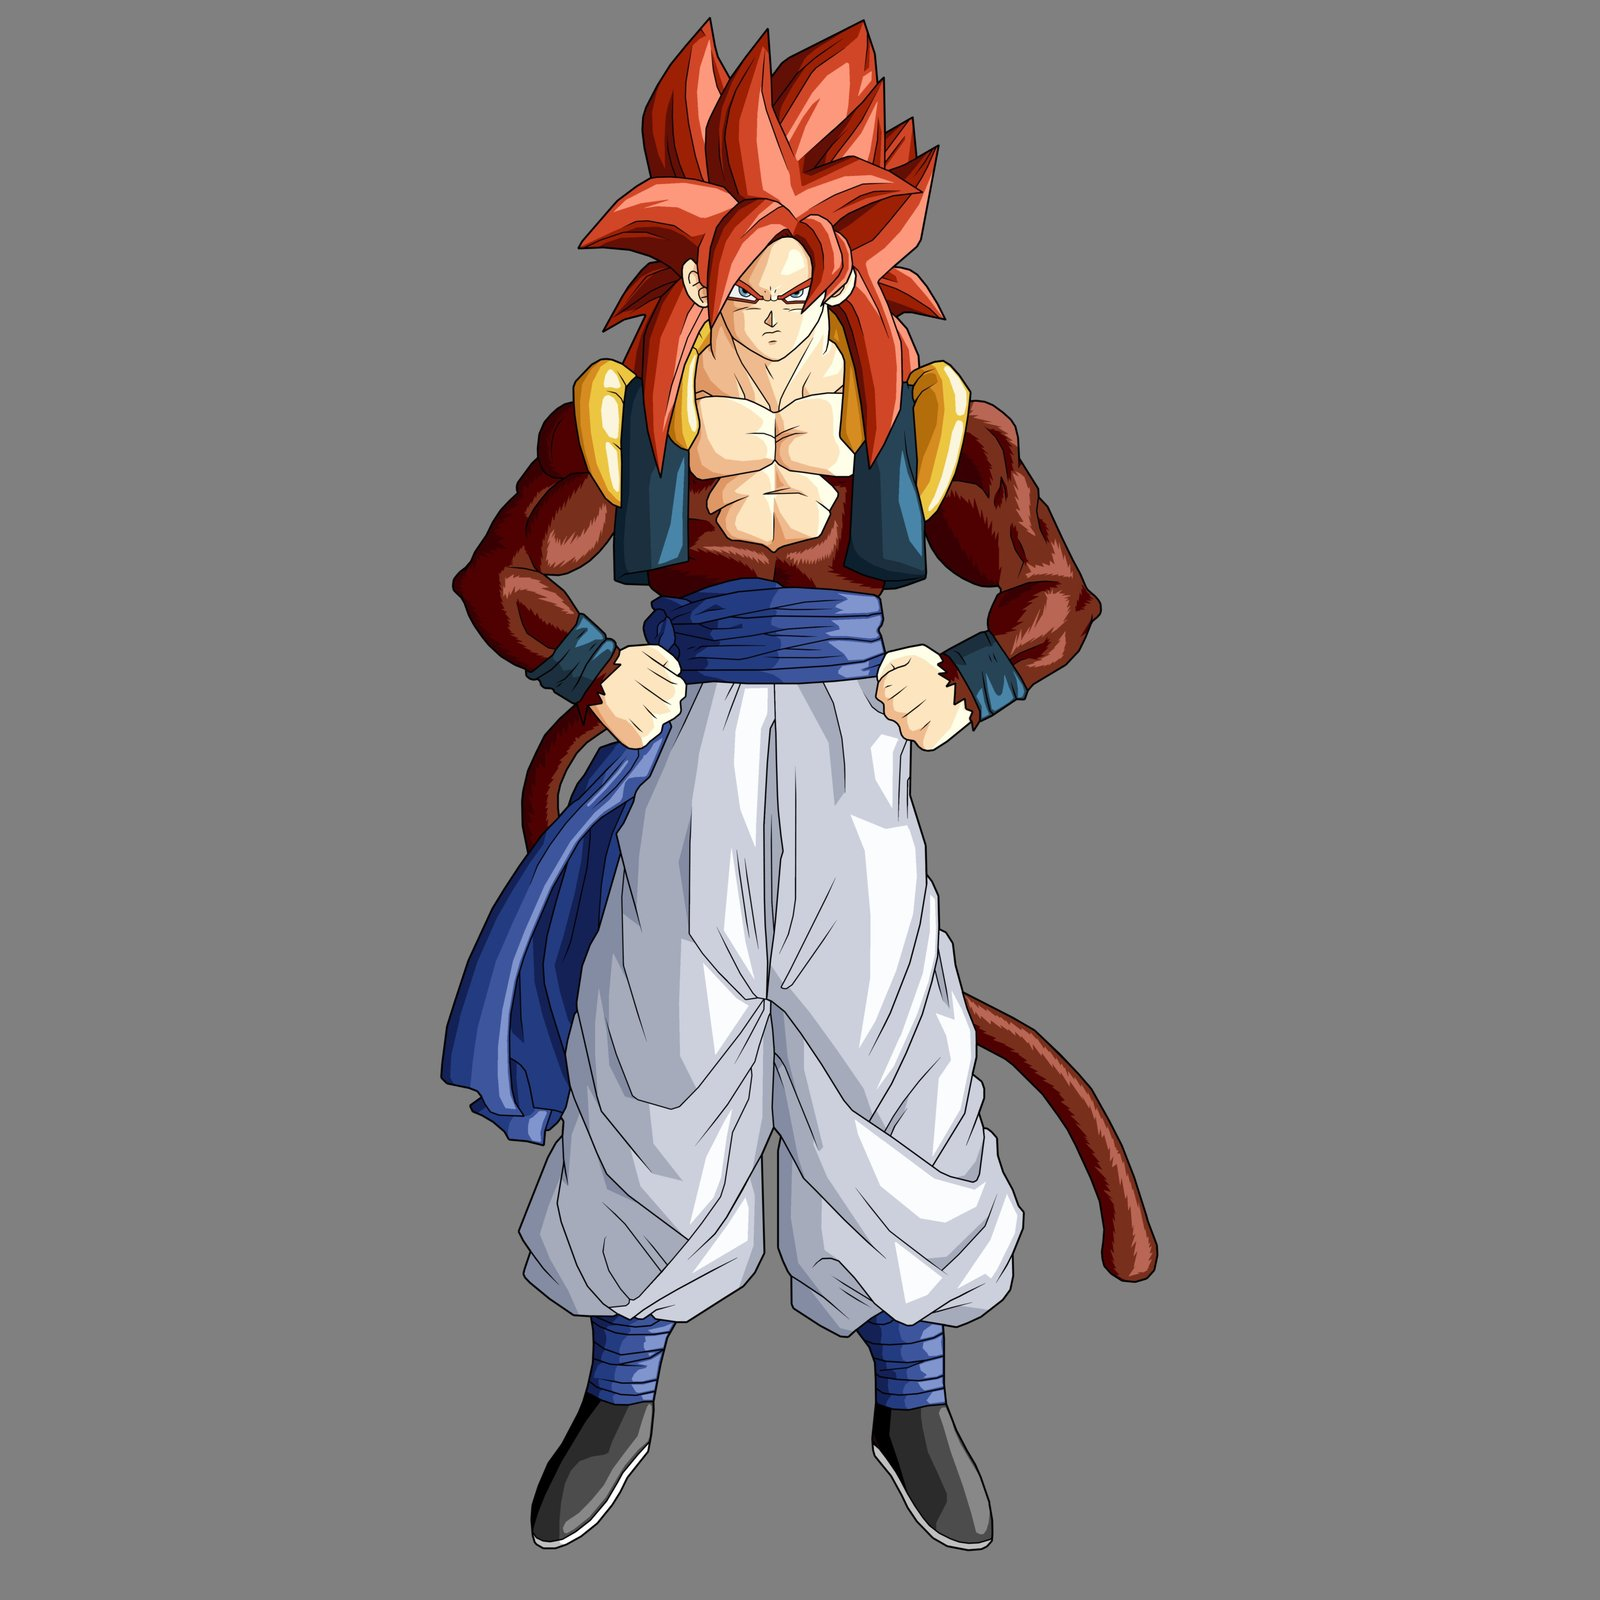 Free Download Dragon Ball Z Wallpapers Gogeta Super Saiyan 4 1600x1600 For Your Desktop Mobile Tablet Explore 44 Dbz Gogeta Wallpaper Dbz Gogeta Wallpaper Gogeta Wallpaper Gogeta Wallpapers